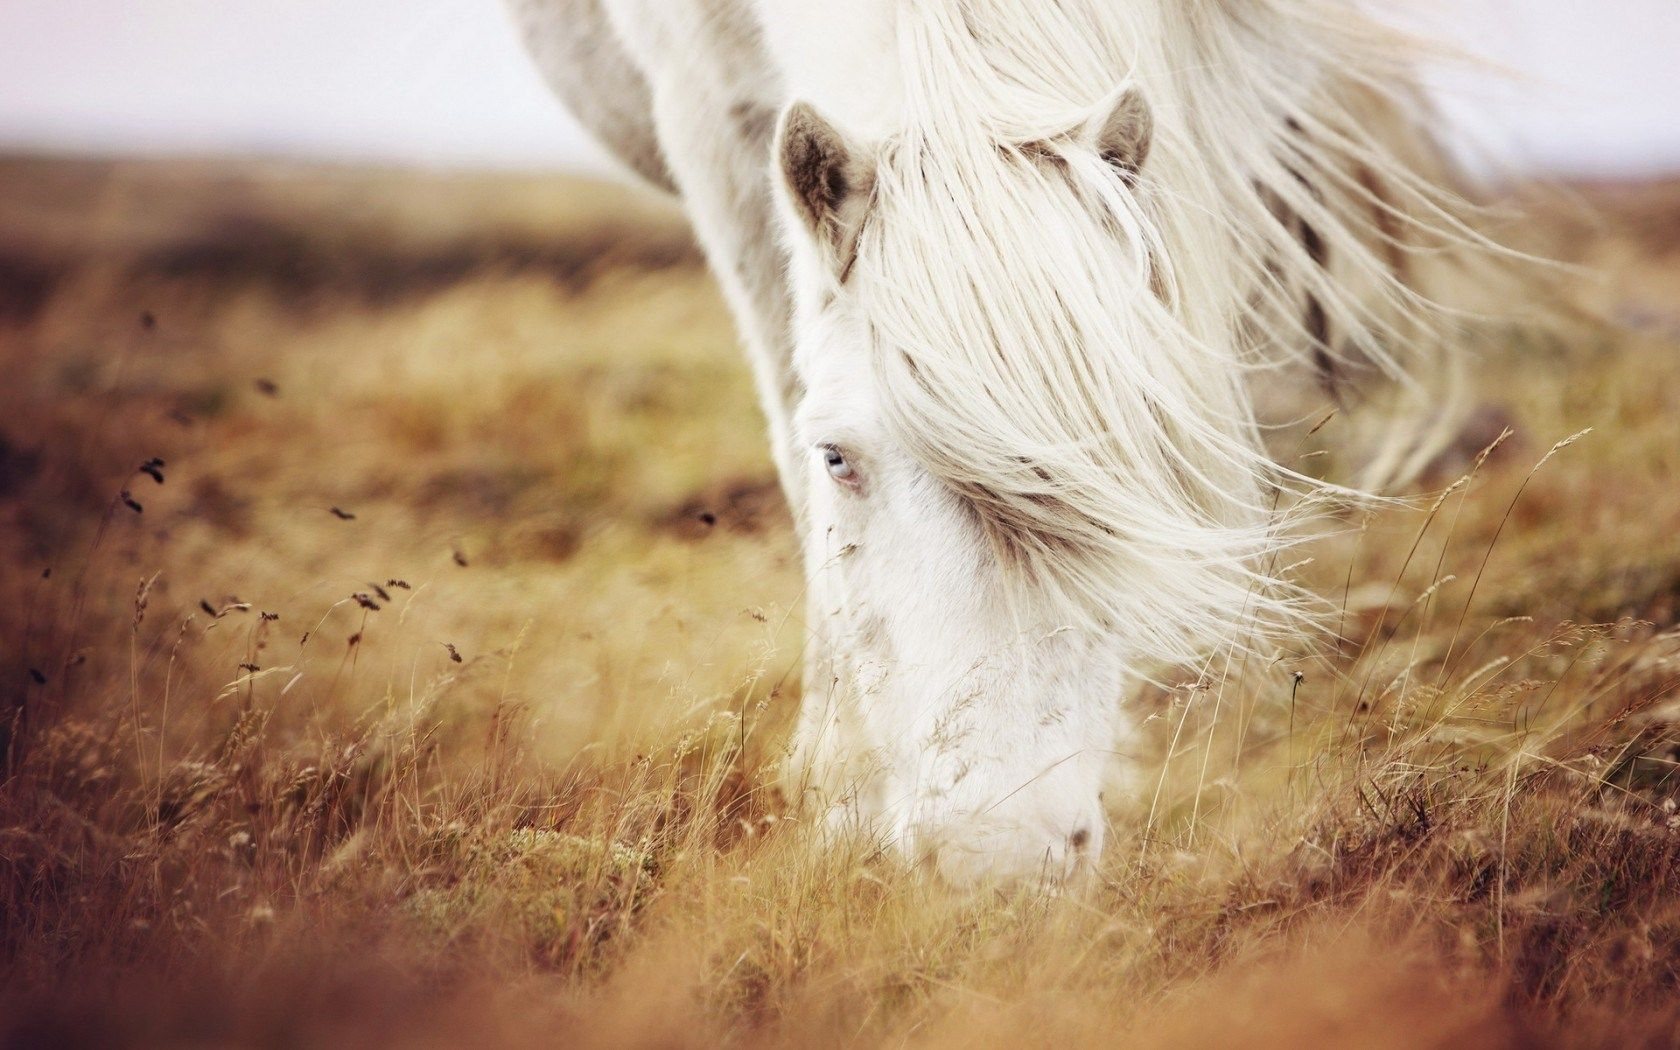 Cool   Wallpaper Horse Spring - bfdff8a8387f54901fdc18fa73549cdf  You Should Have_854848.jpg